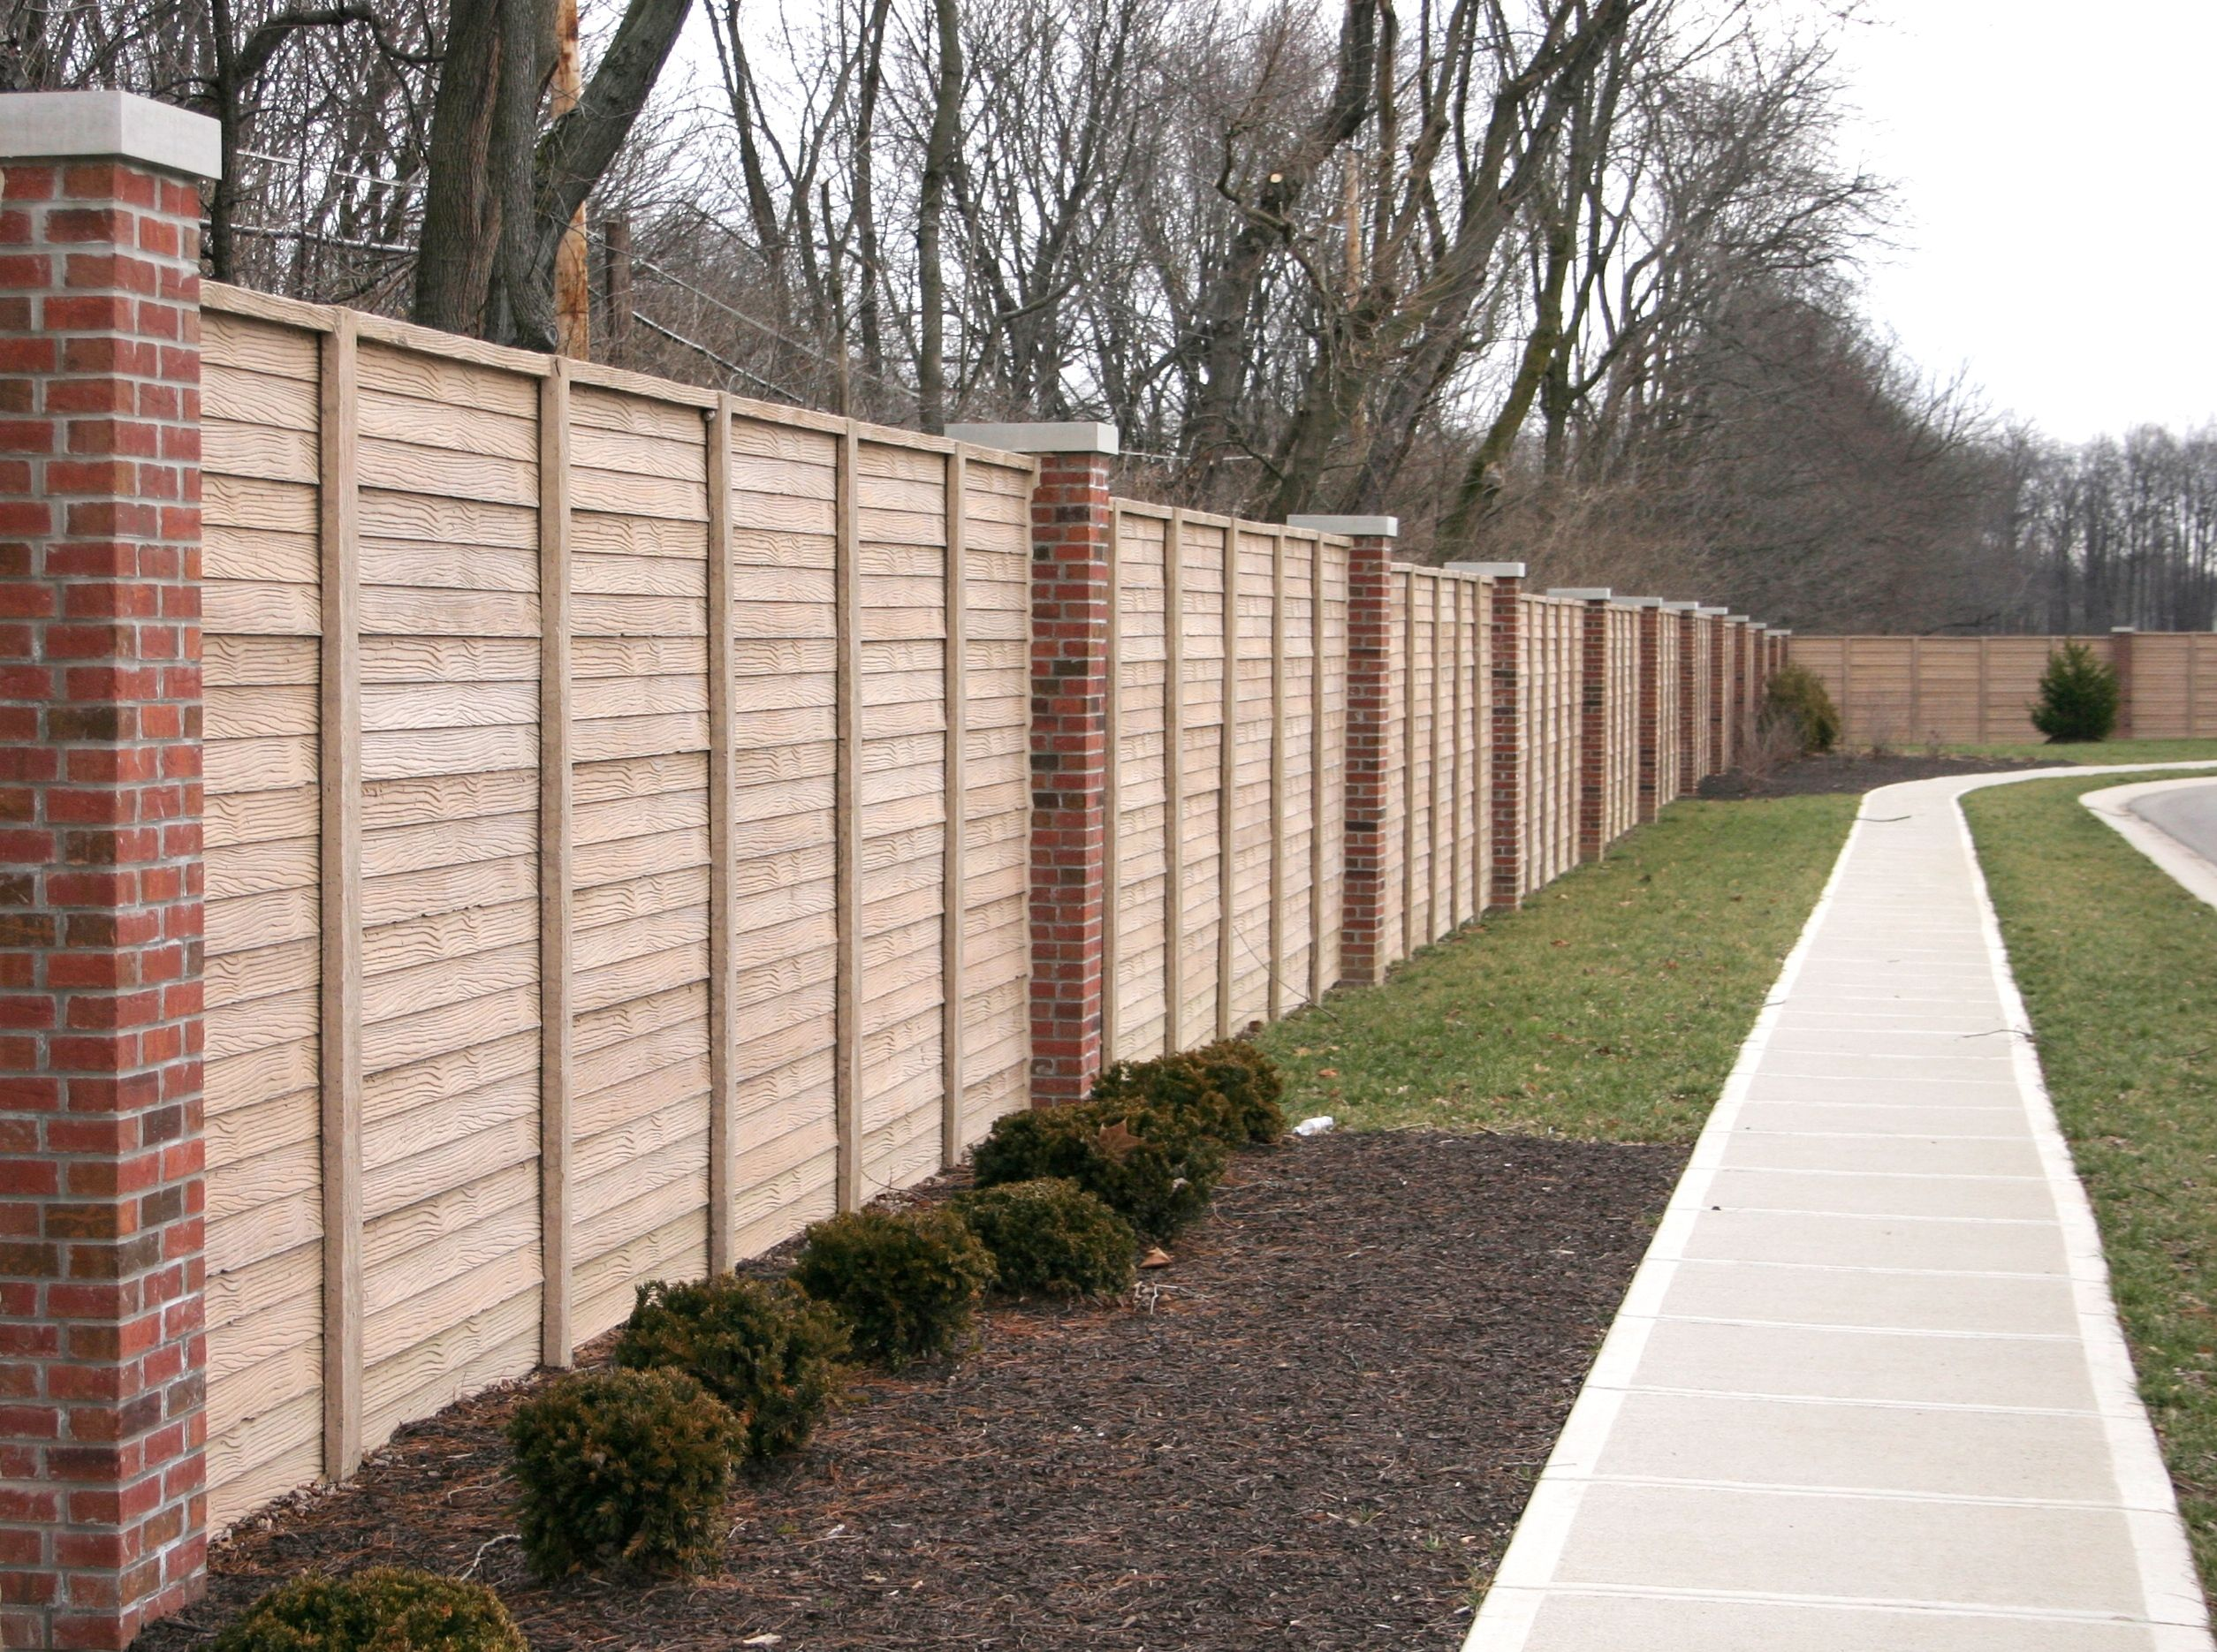 Concrete screen fence fences wood fences and bricks for Wood screen fence